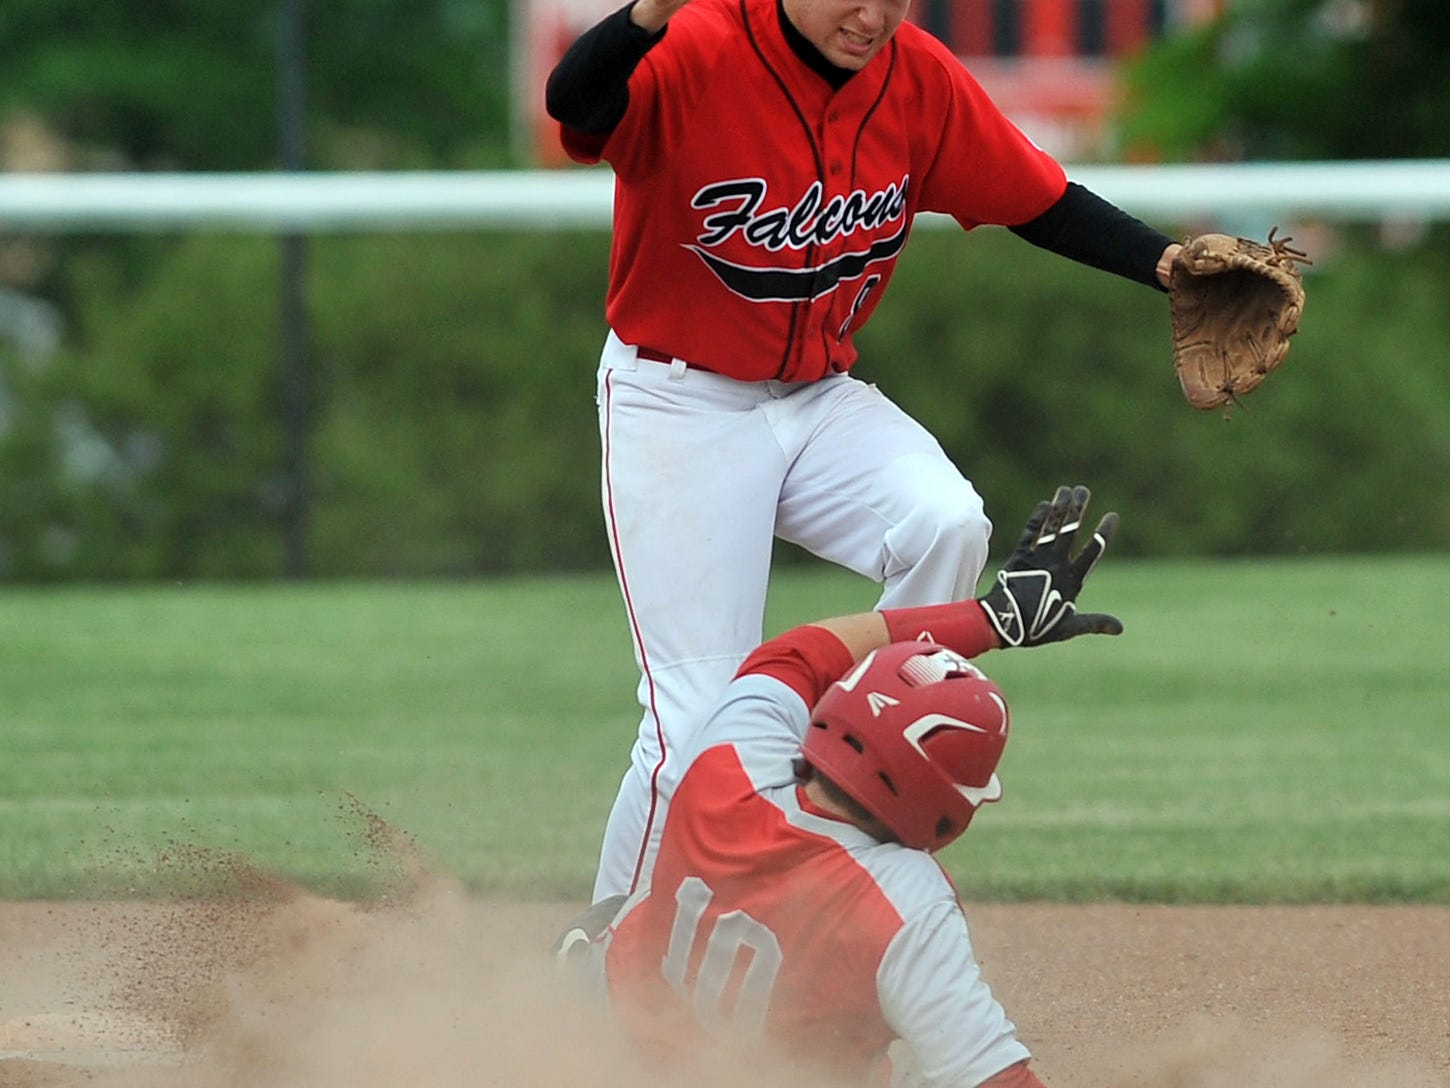 Fairfield Union second baseman Brandon Wallace tries to get out of the way of the slide of Sheridan's Collin Conrad Thursday at Fairfield Union High School in Rushville. The Falcons lost 3-2 to the Generals in eight innings.